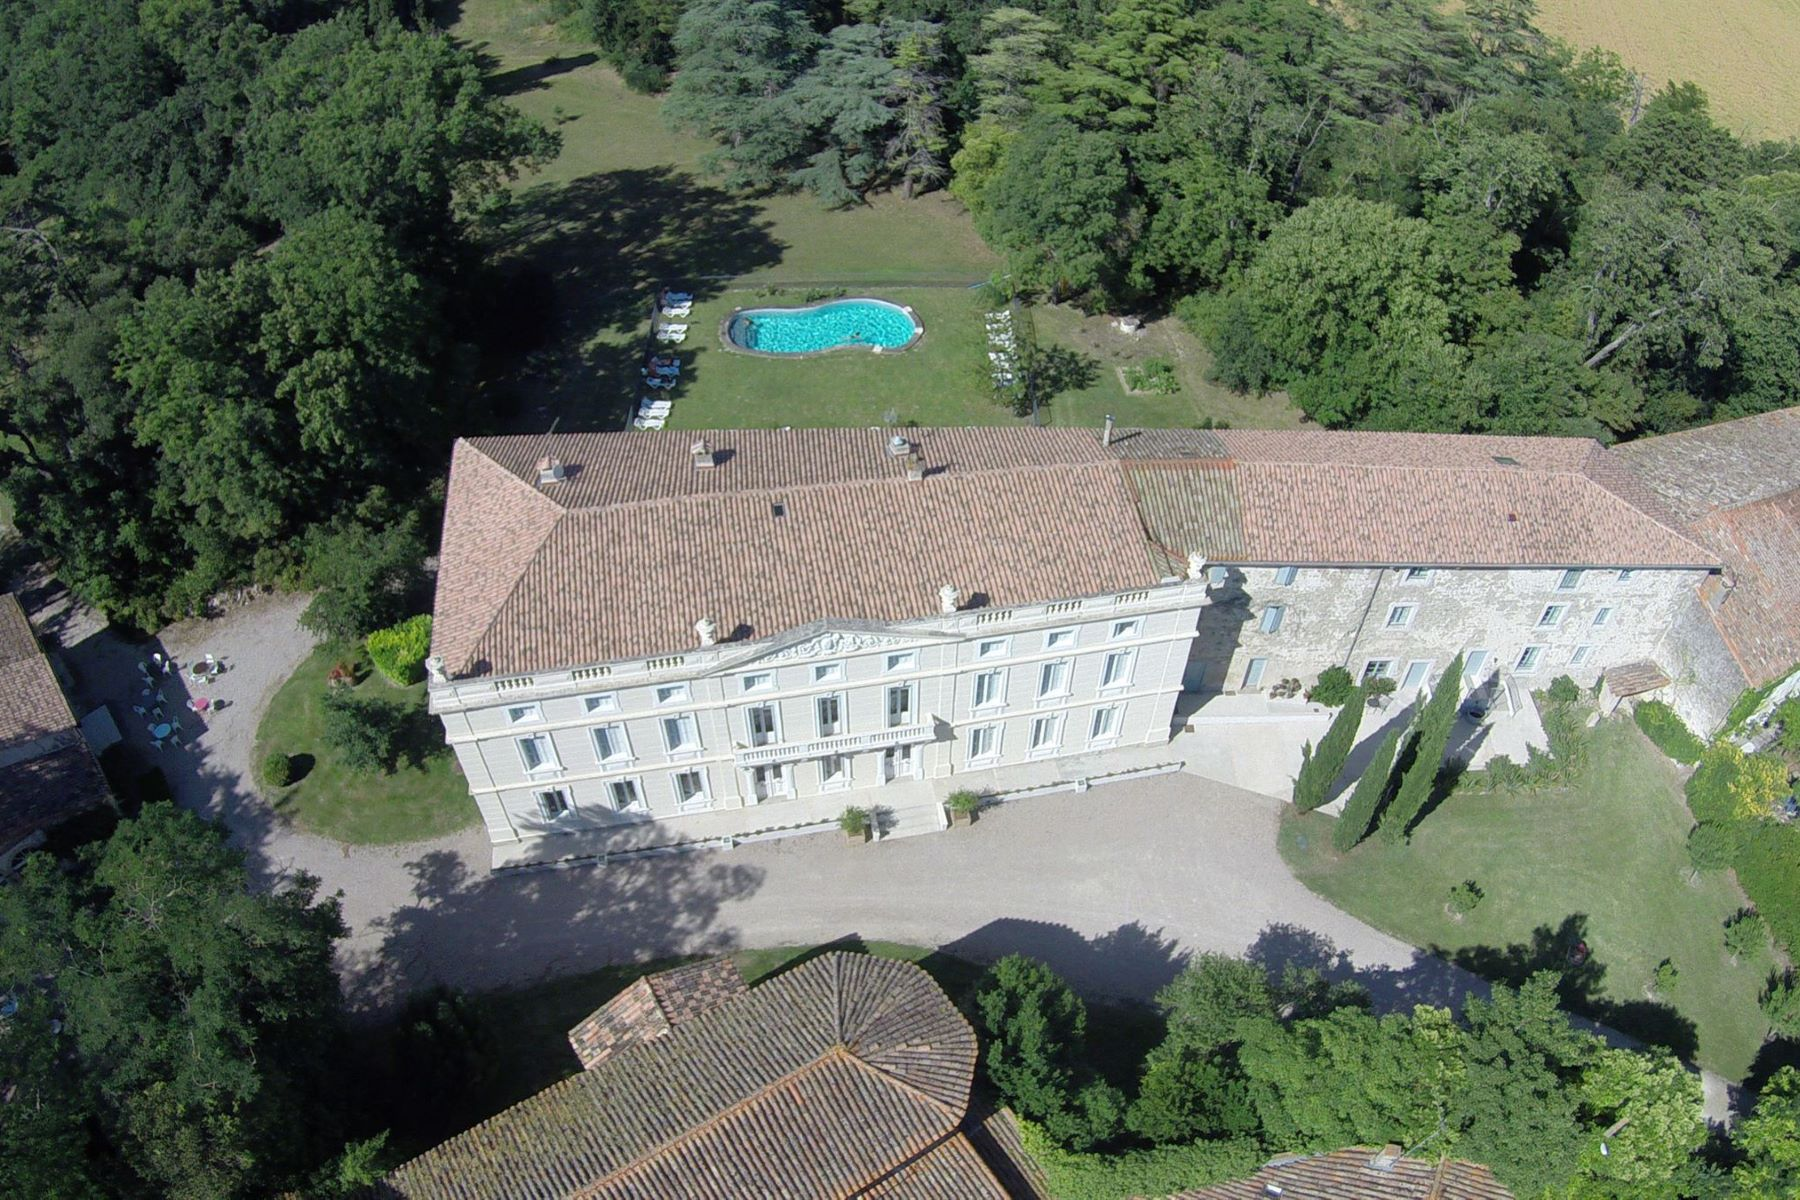 Single Family Home for Sale at ELEGANT CASTLE Carcassonne, Languedoc-Roussillon 11000 France